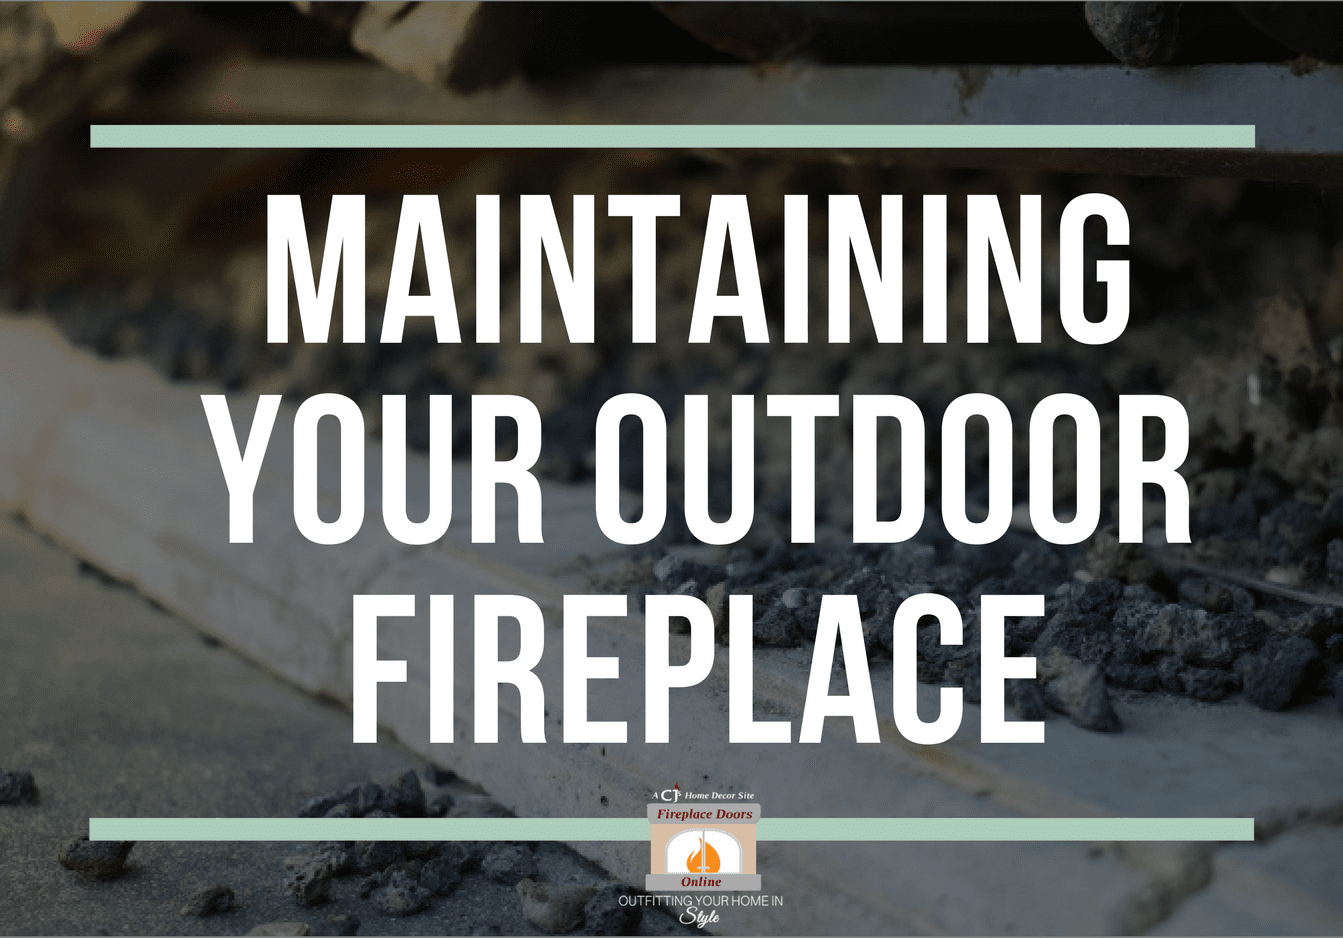 Maintaining Your Outdoor Fireplace